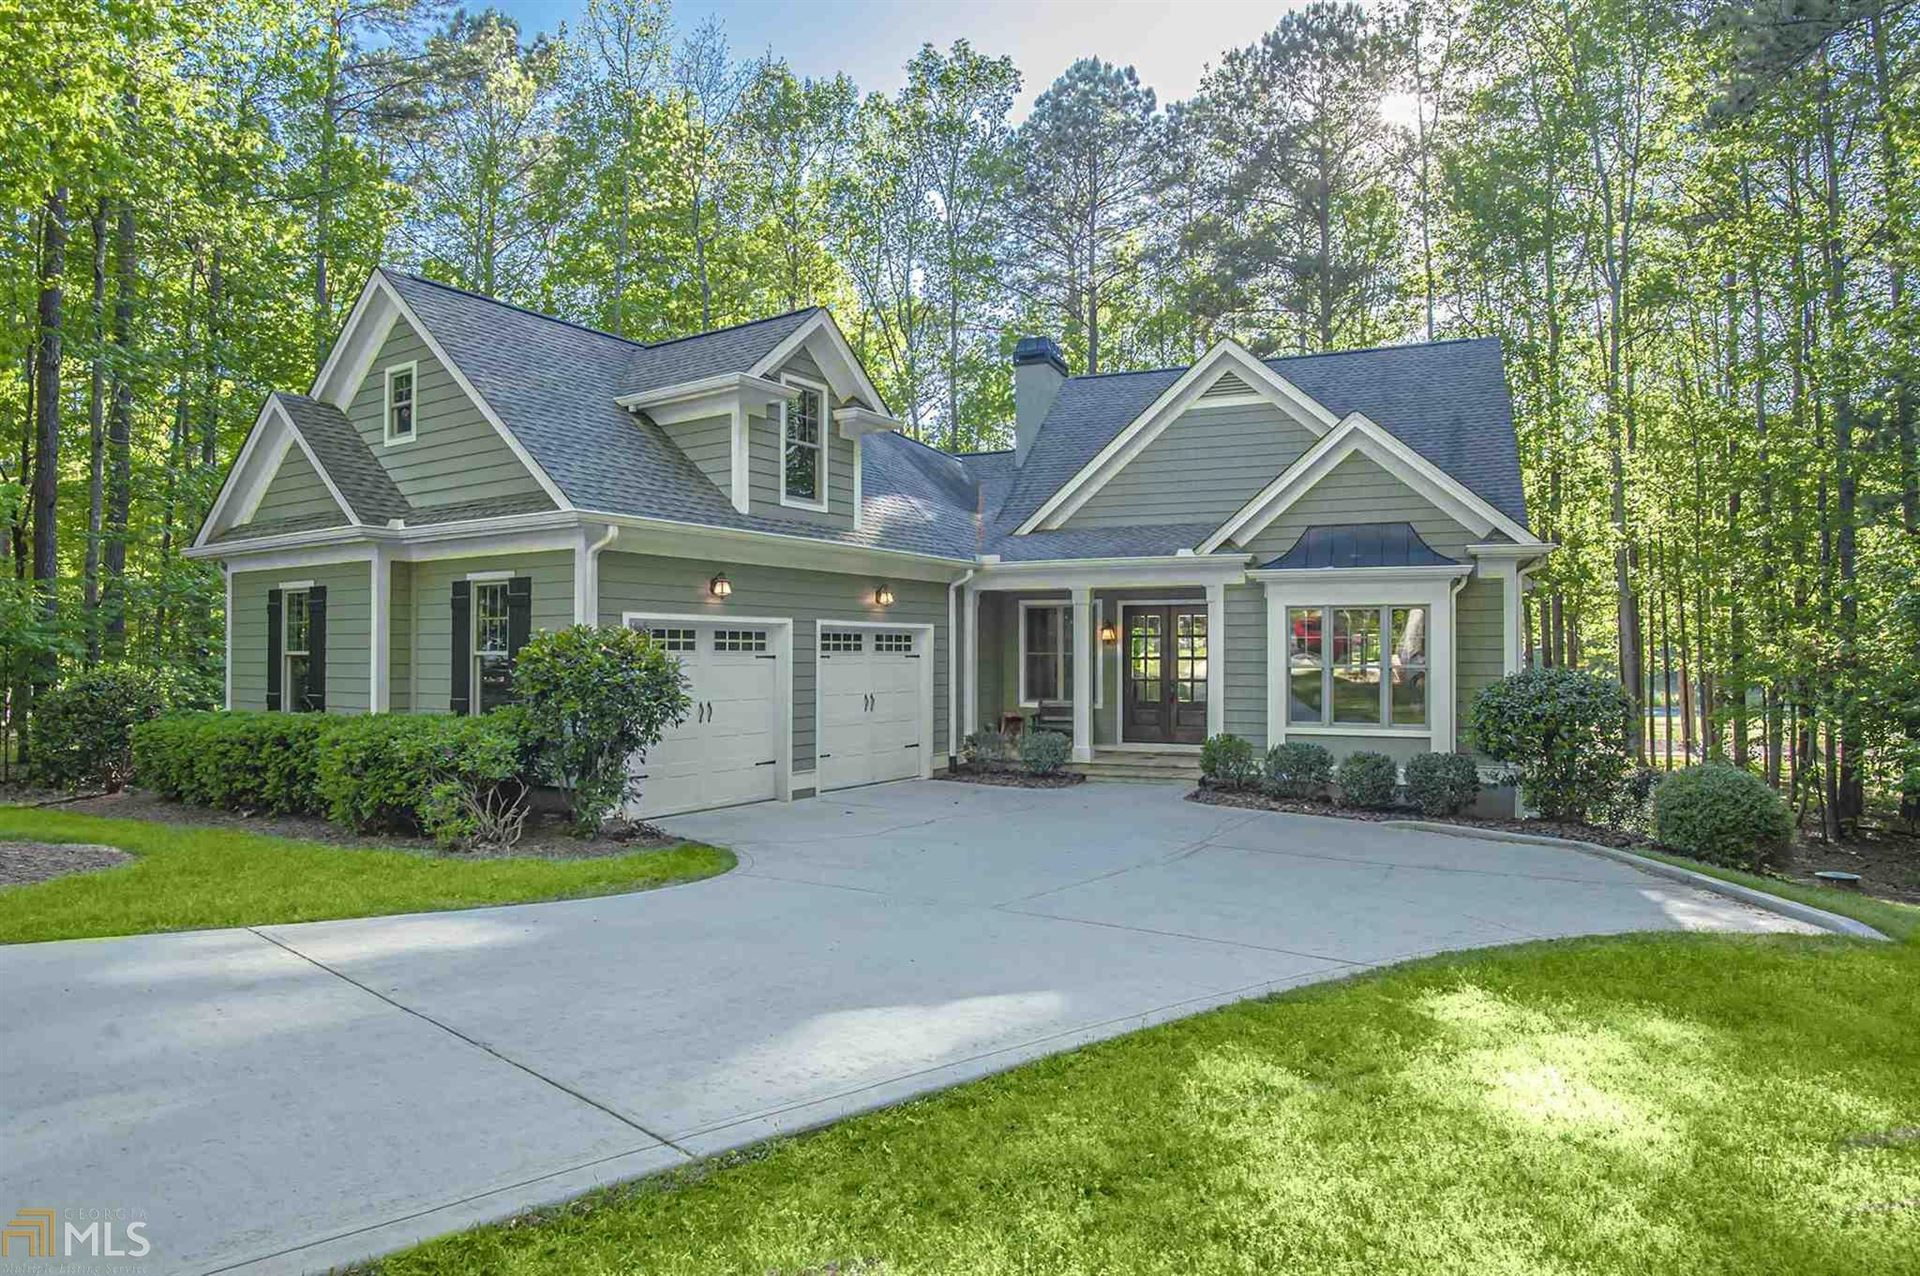 1801 Club Dr, Greensboro, GA 30642 - MLS#: 8946963